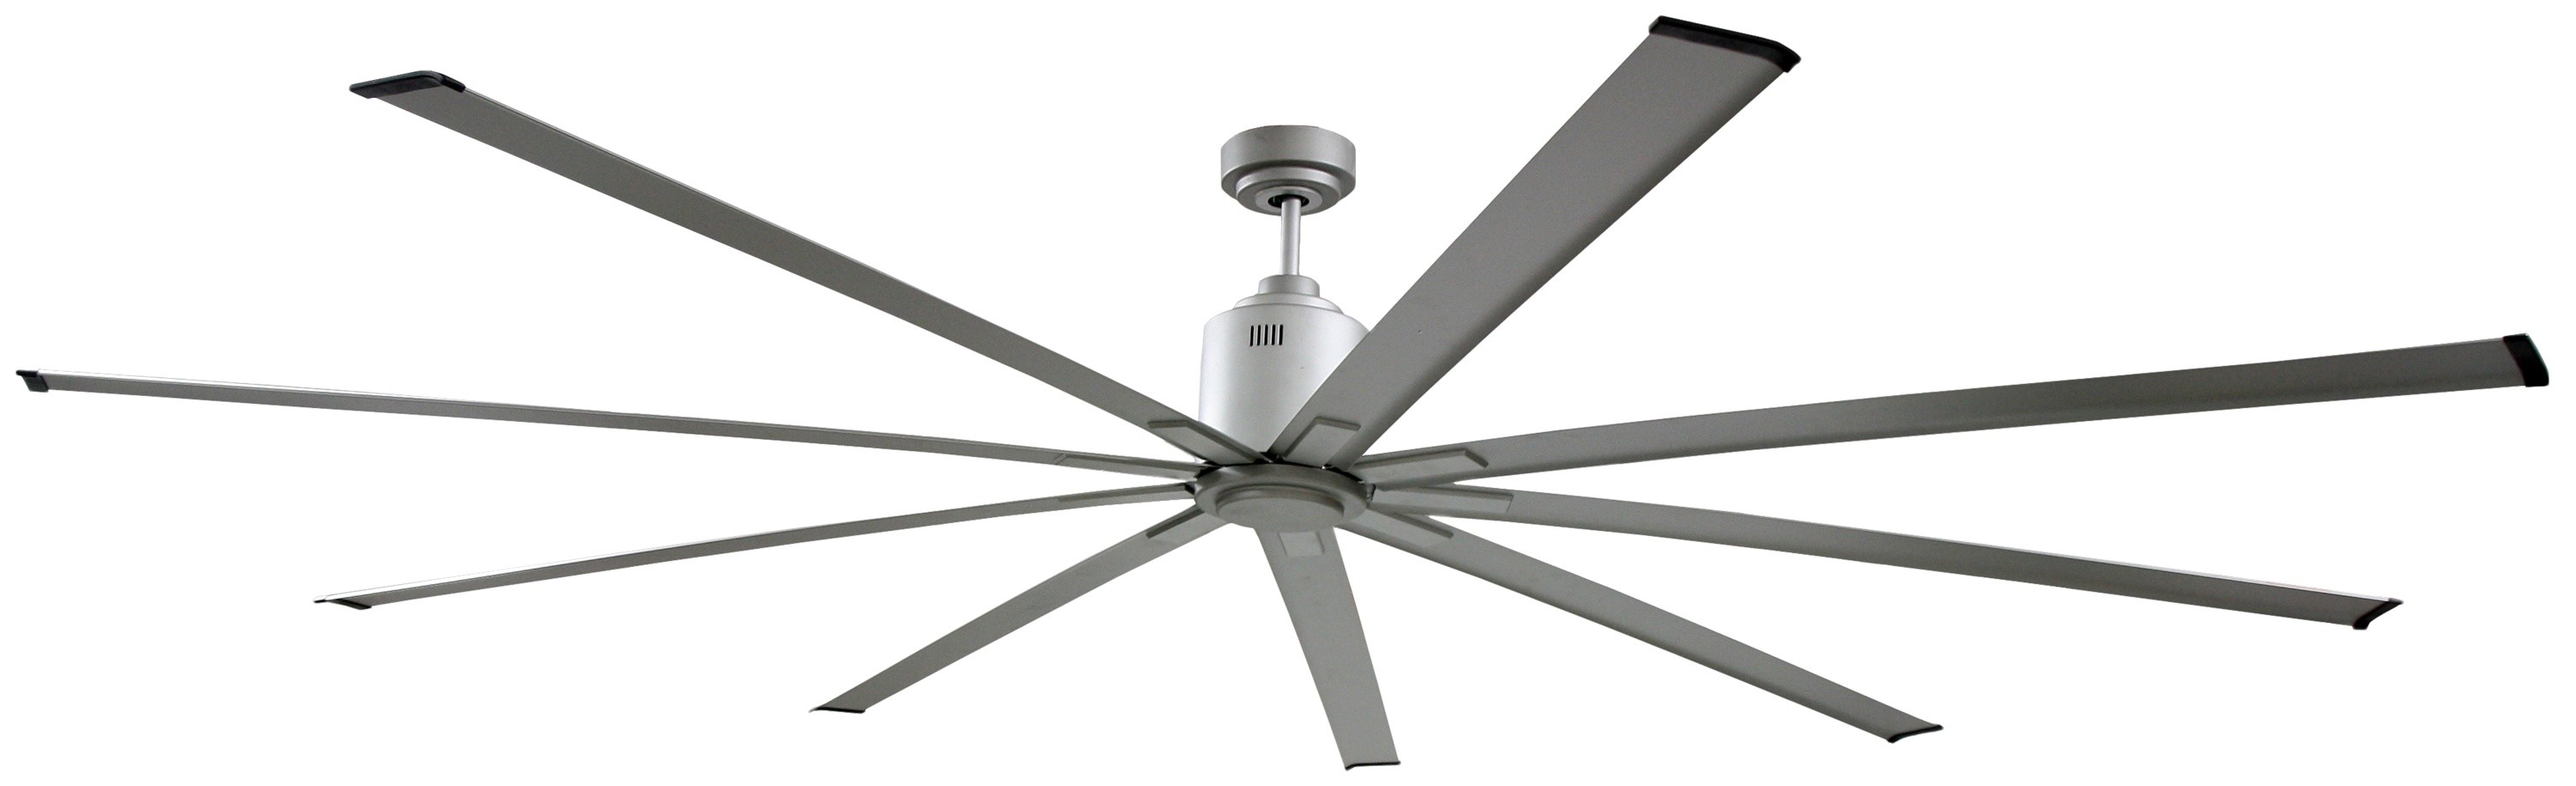 big industrial ceiling fans photo - 4